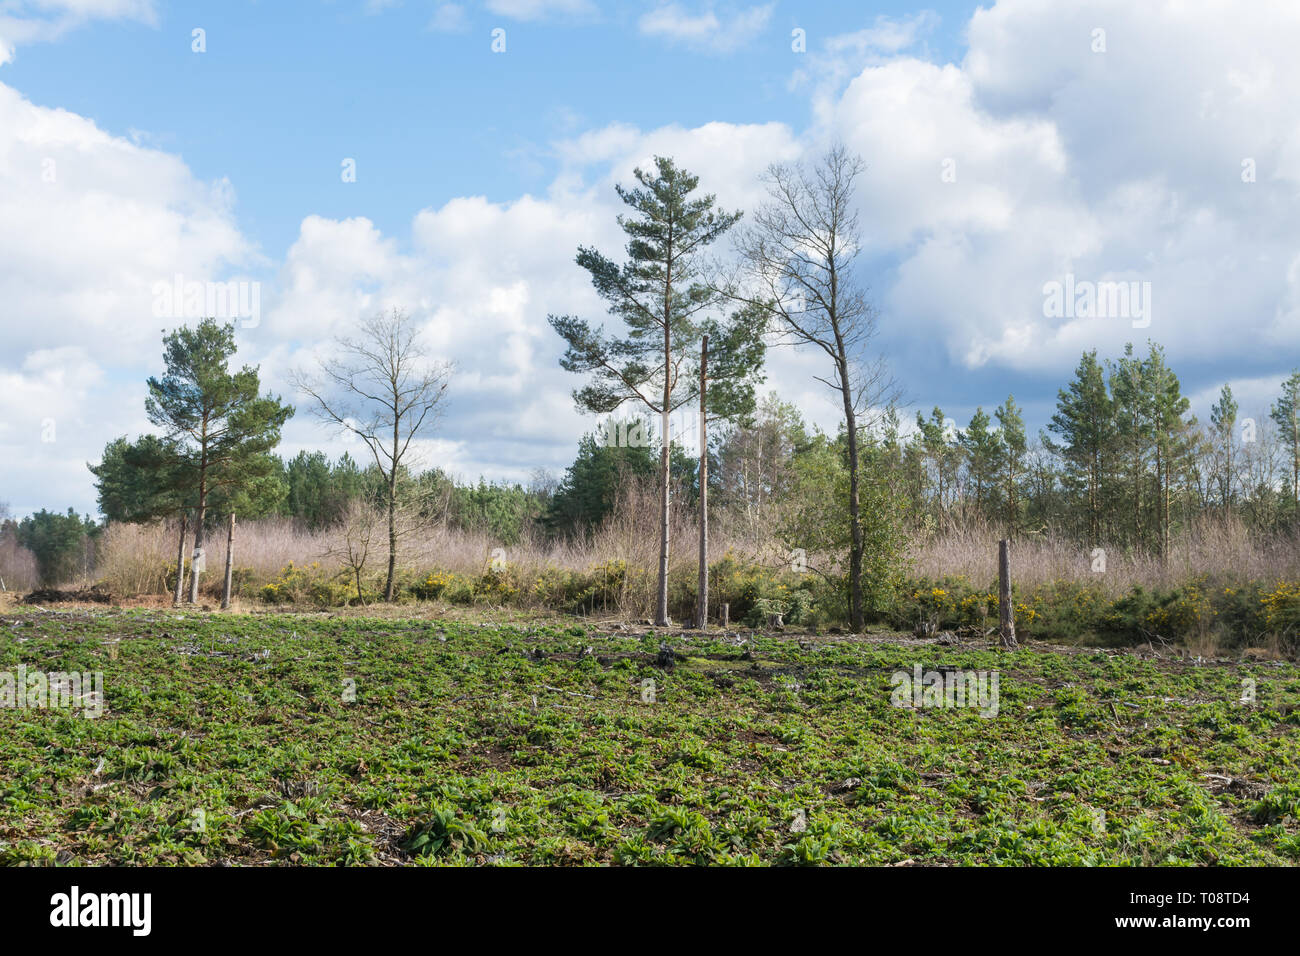 View of heathland and woodland habitat at Bramshill Plantation, managed by the Forestry Commission, in Hampshire, UK - Stock Image